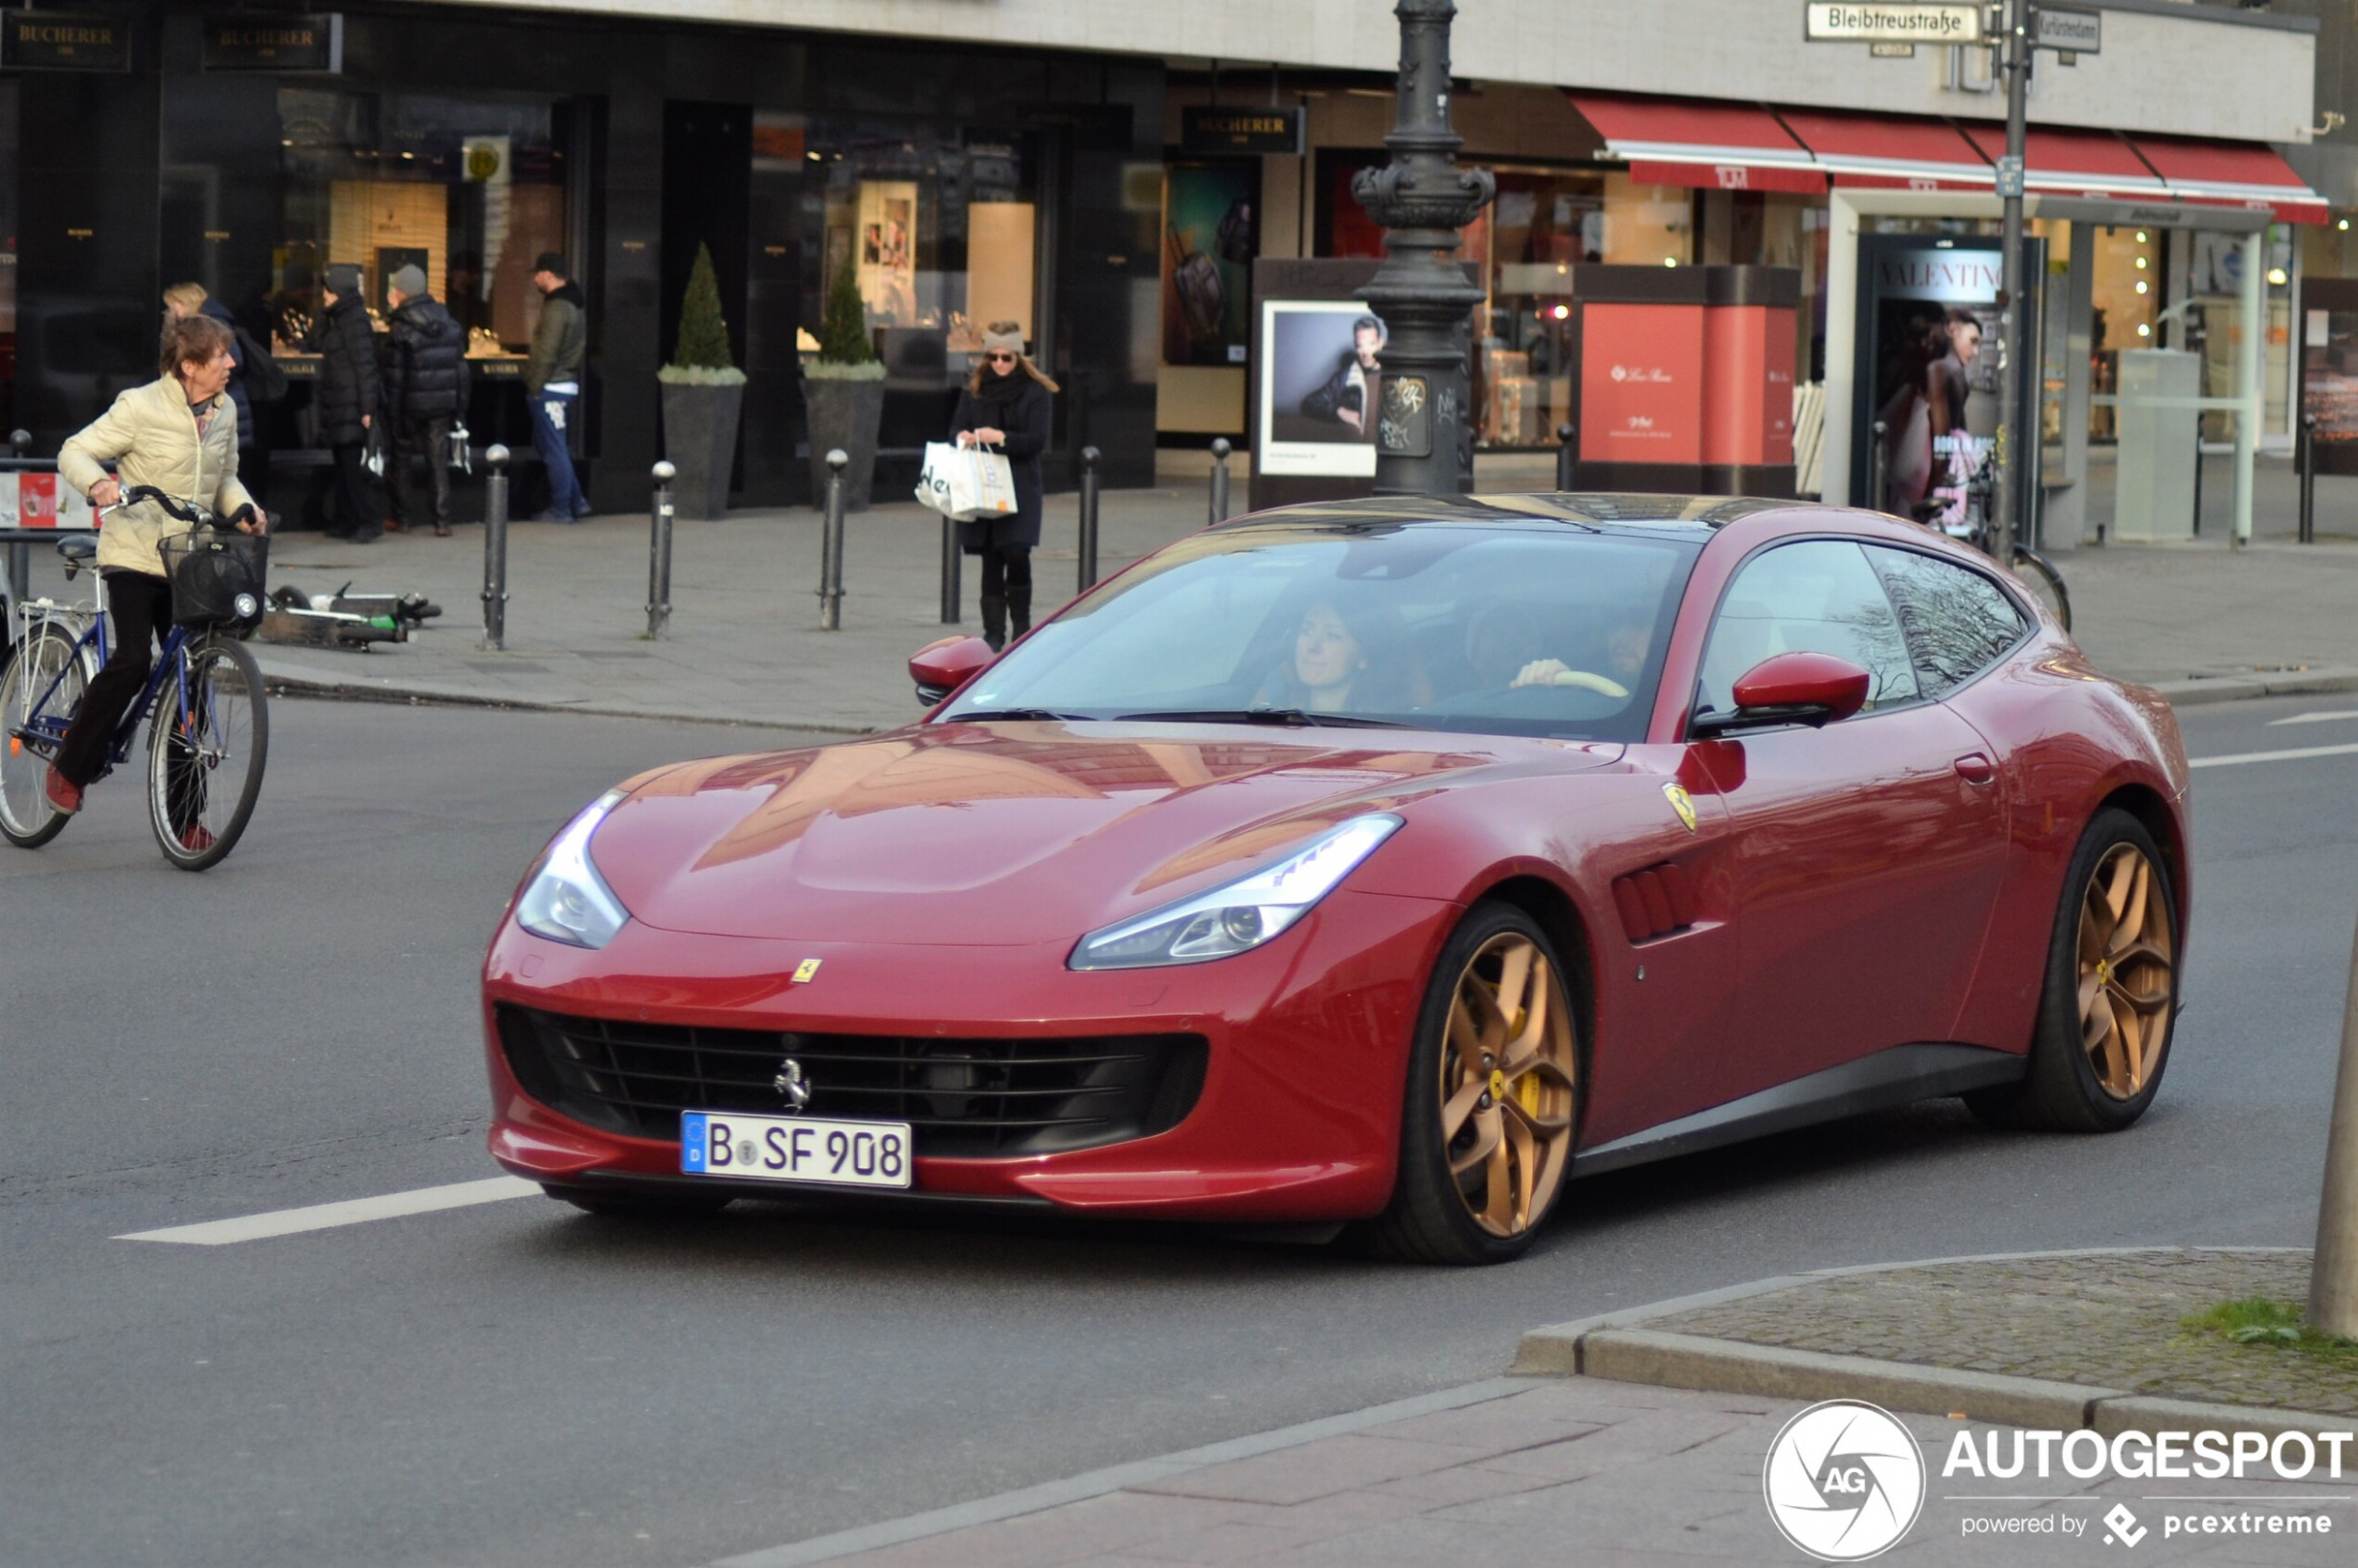 Ferrari GTC9Lusso T - 9 April 9 - Autogespot